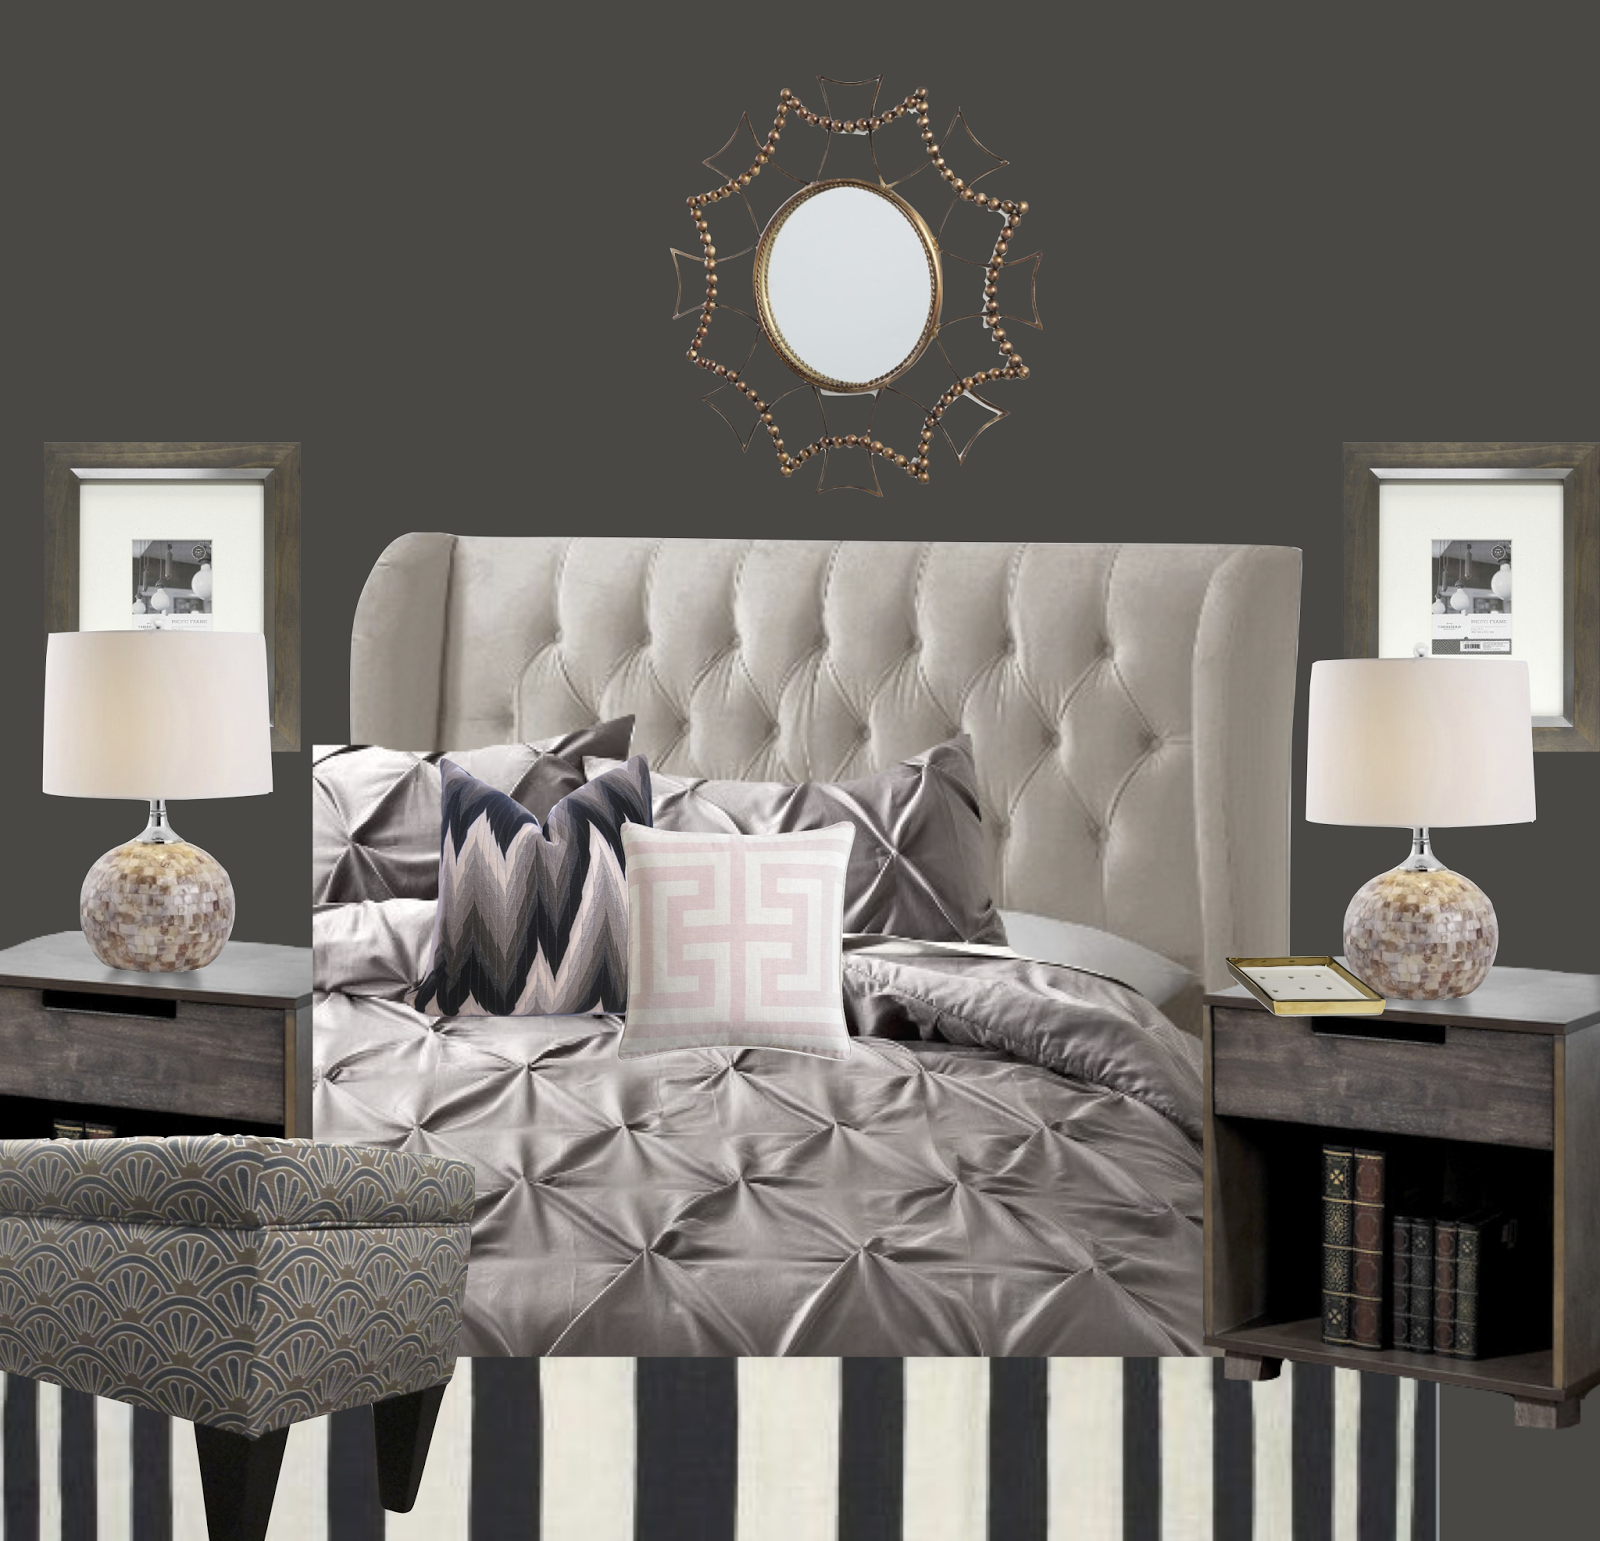 Bedroom Colour Grey Bedroom Wall Almirah Designs Green Bedroom Accessories Vintage Bedroom Accessories: Glamorous Gray Bedroom - Copycatchic